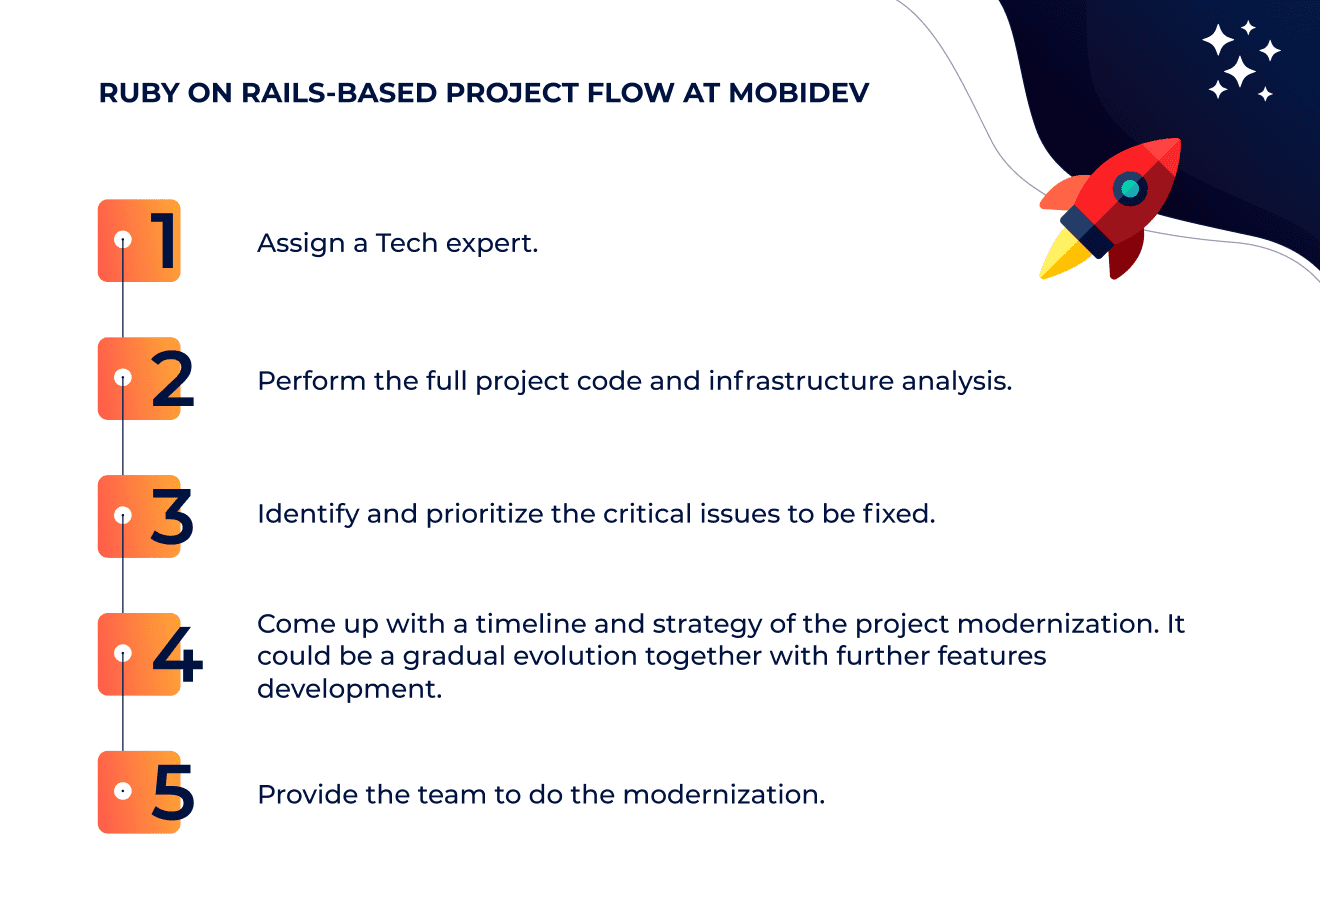 Ruby on Rails-based project flow at MobiDev